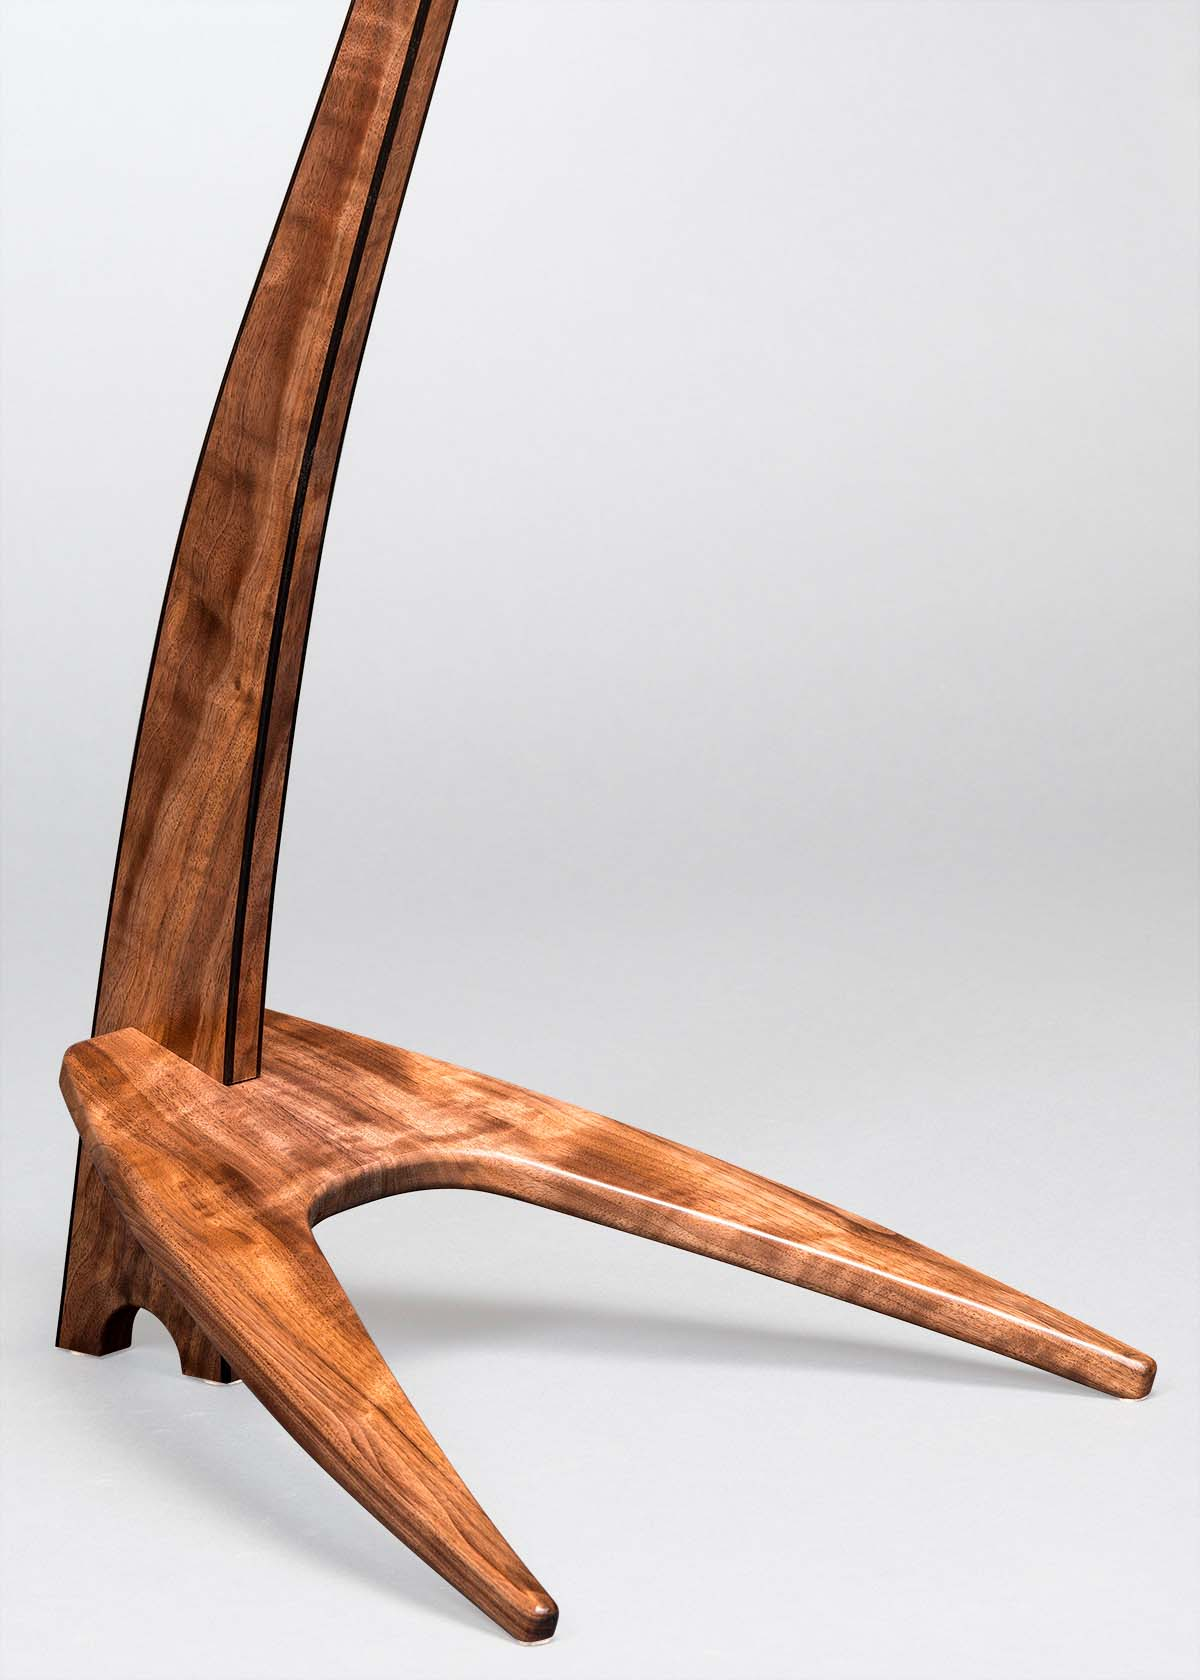 WM Guitar Stand in Claro Walnut with Ebony Edge Binding